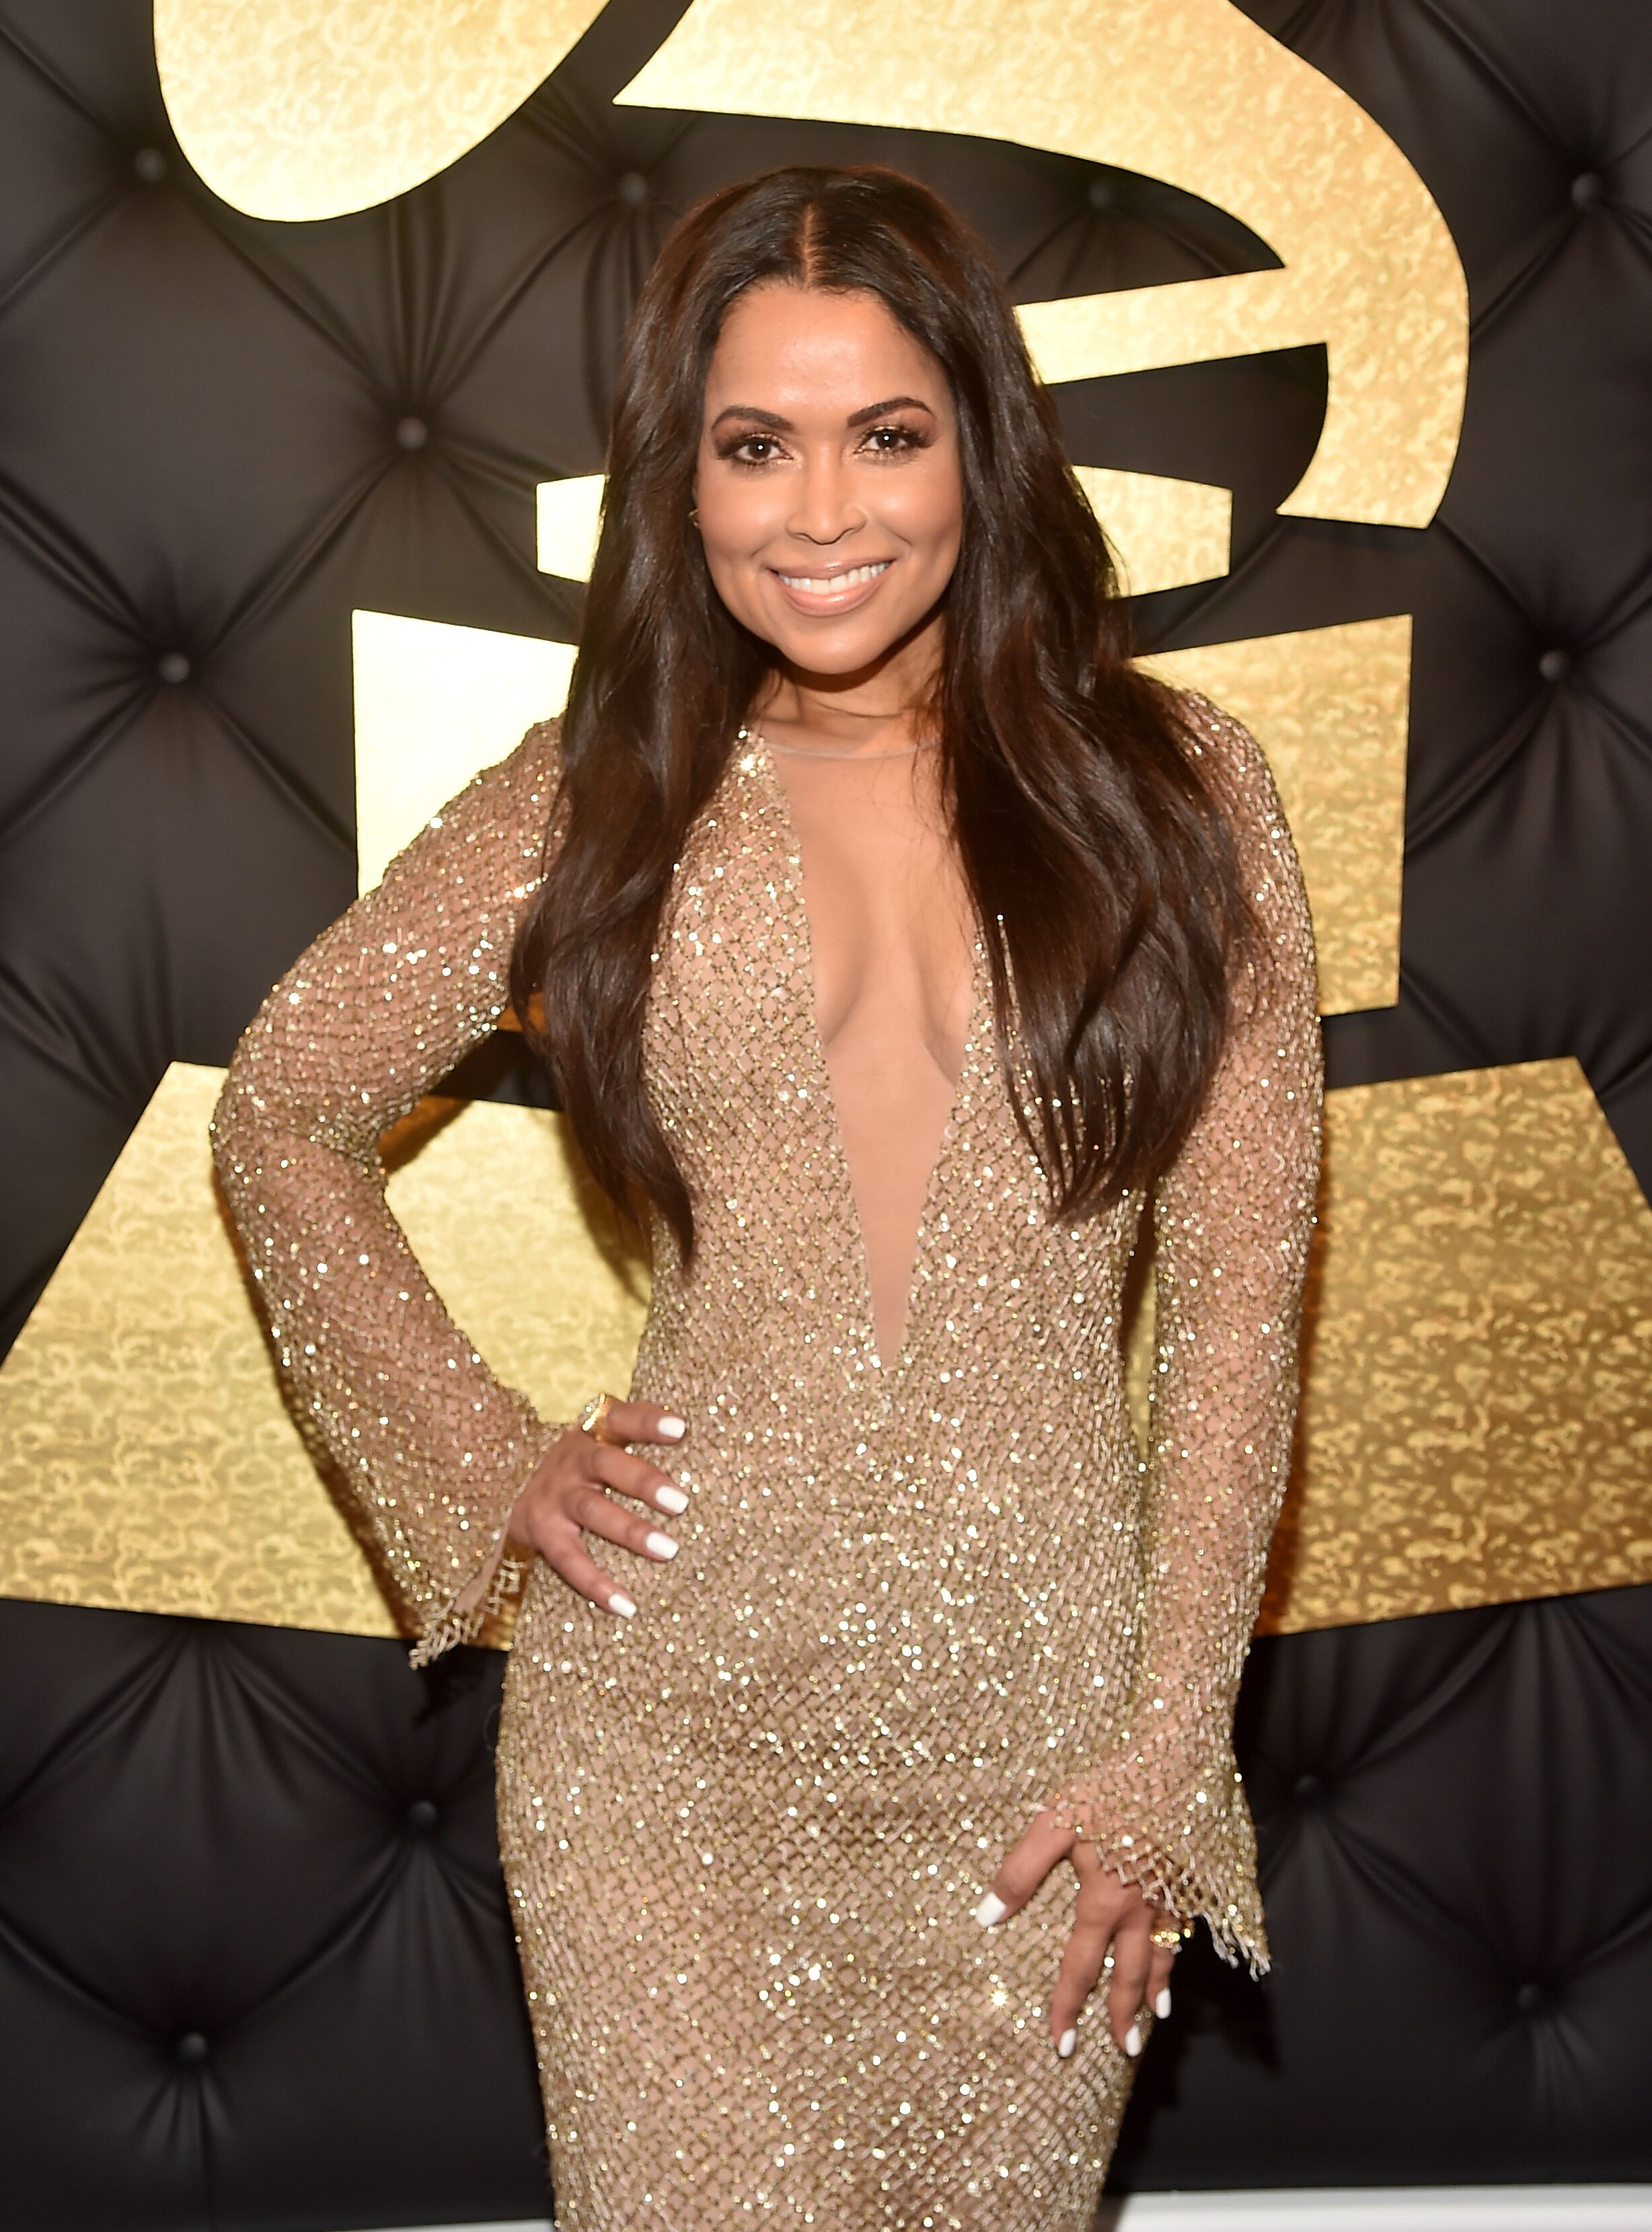 Tracey Edmonds attends The 59th GRAMMY Awards at STAPLES Center on February 12, 2017 in Los Angeles, California.| Source: Getty Images